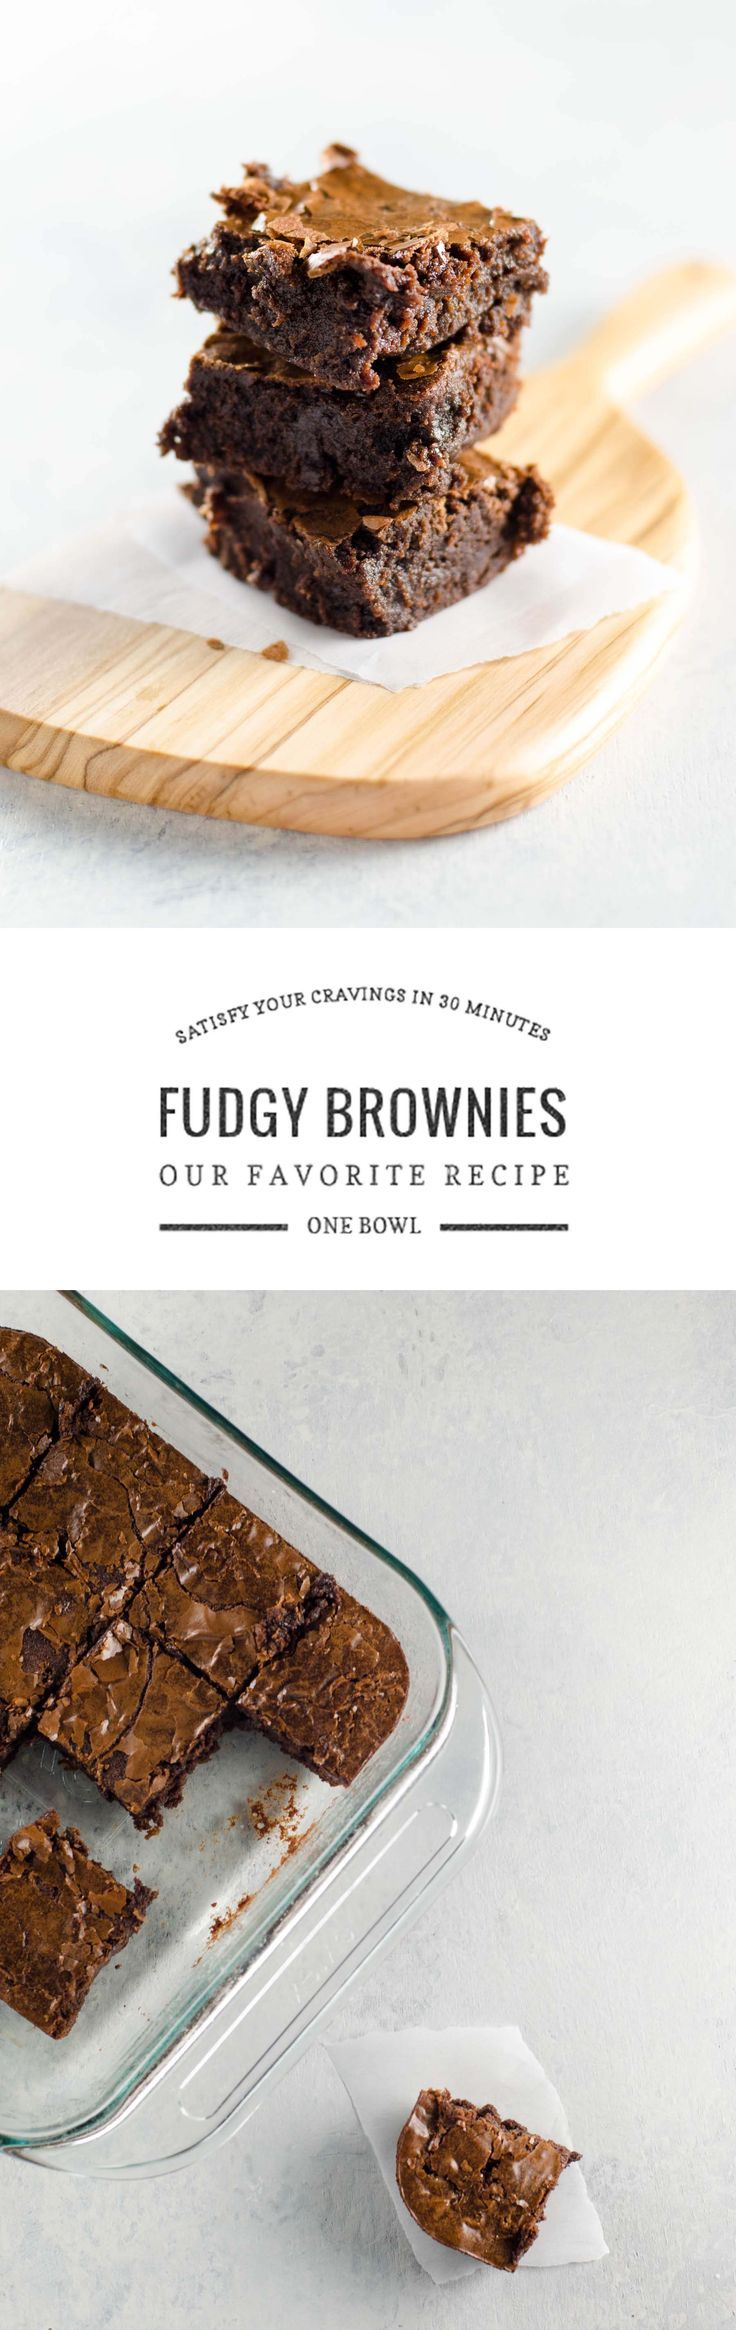 It took me years, but I've finally perfected a fudgy one-bowl brownies recipe that will take our family through the ages, and hopefully yours too.